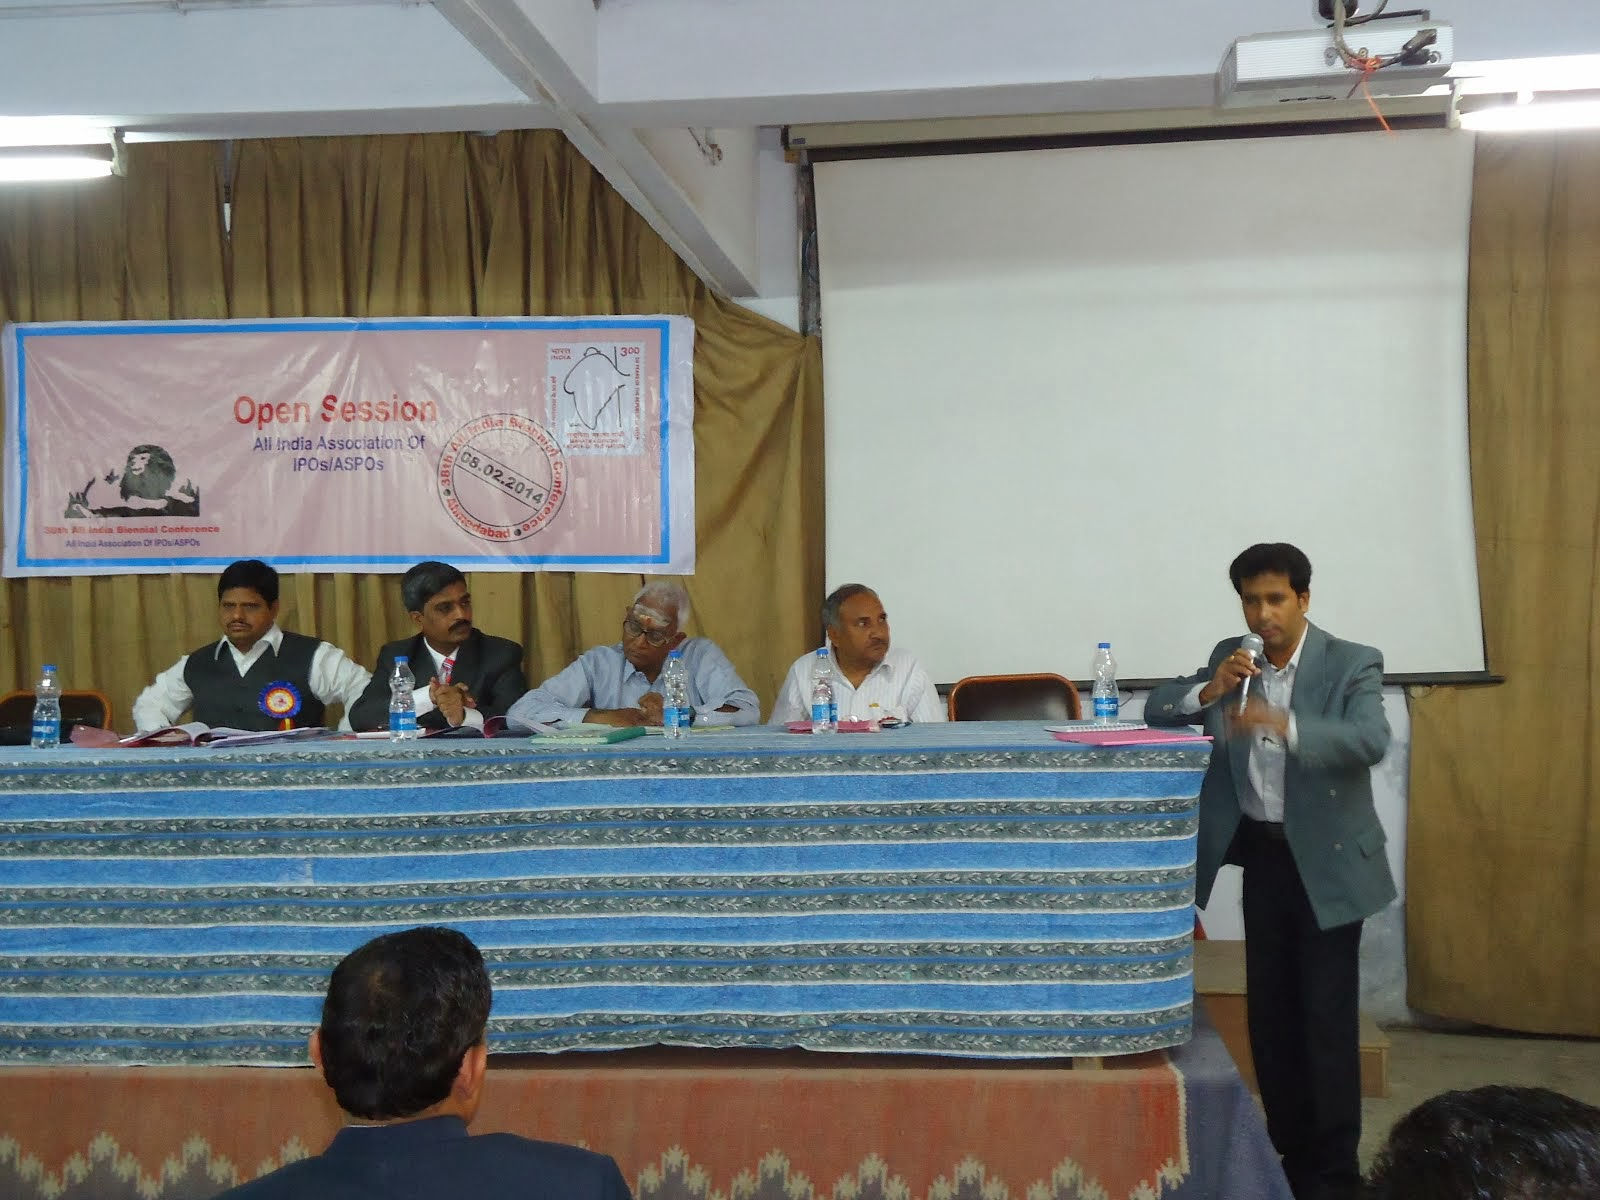 38th All India Conference held on 7th and 8th February, 2014 at Ahmedabad